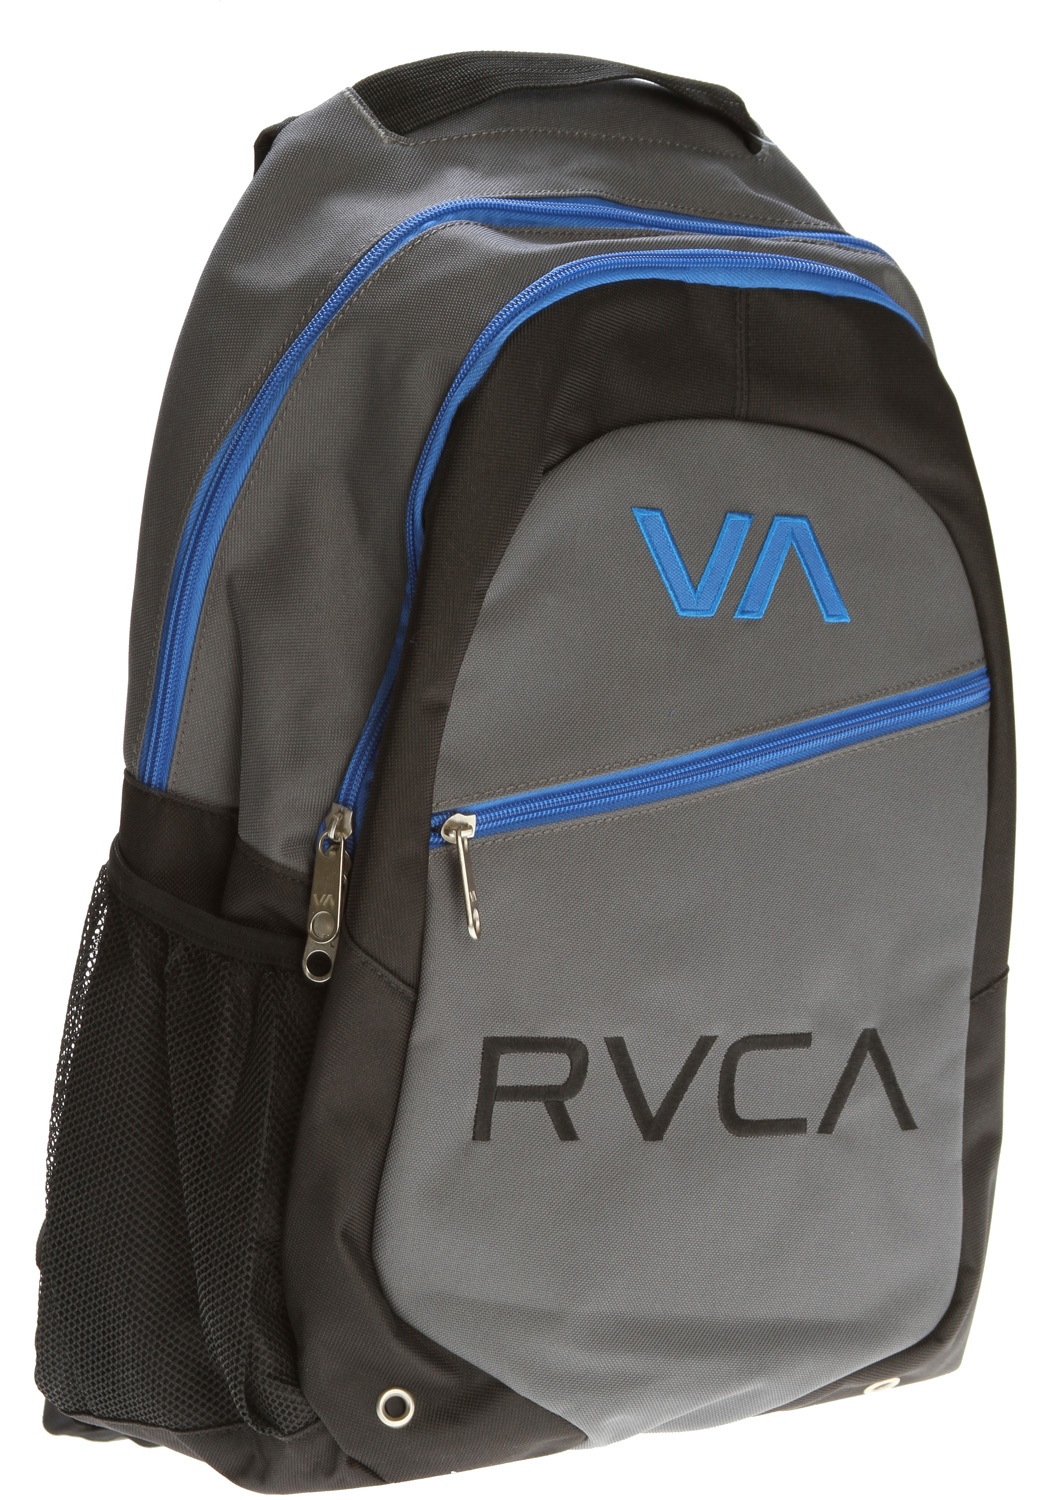 "Key Features of the RVCA RVCA Pak II Backpack: Dimensions: 19"" x 13"" x 5.5"" 100% Polyester back pack Three zippered enclosed compartments with lap top sleeve at interior Mesh water bottle holder at side Embroidered VA application and RVCA embroidery at front Embroidered VA applique at back Padded back and shoulder straps VA stacked woven label at shoulder strap Contrast binding at interior - $46.00"